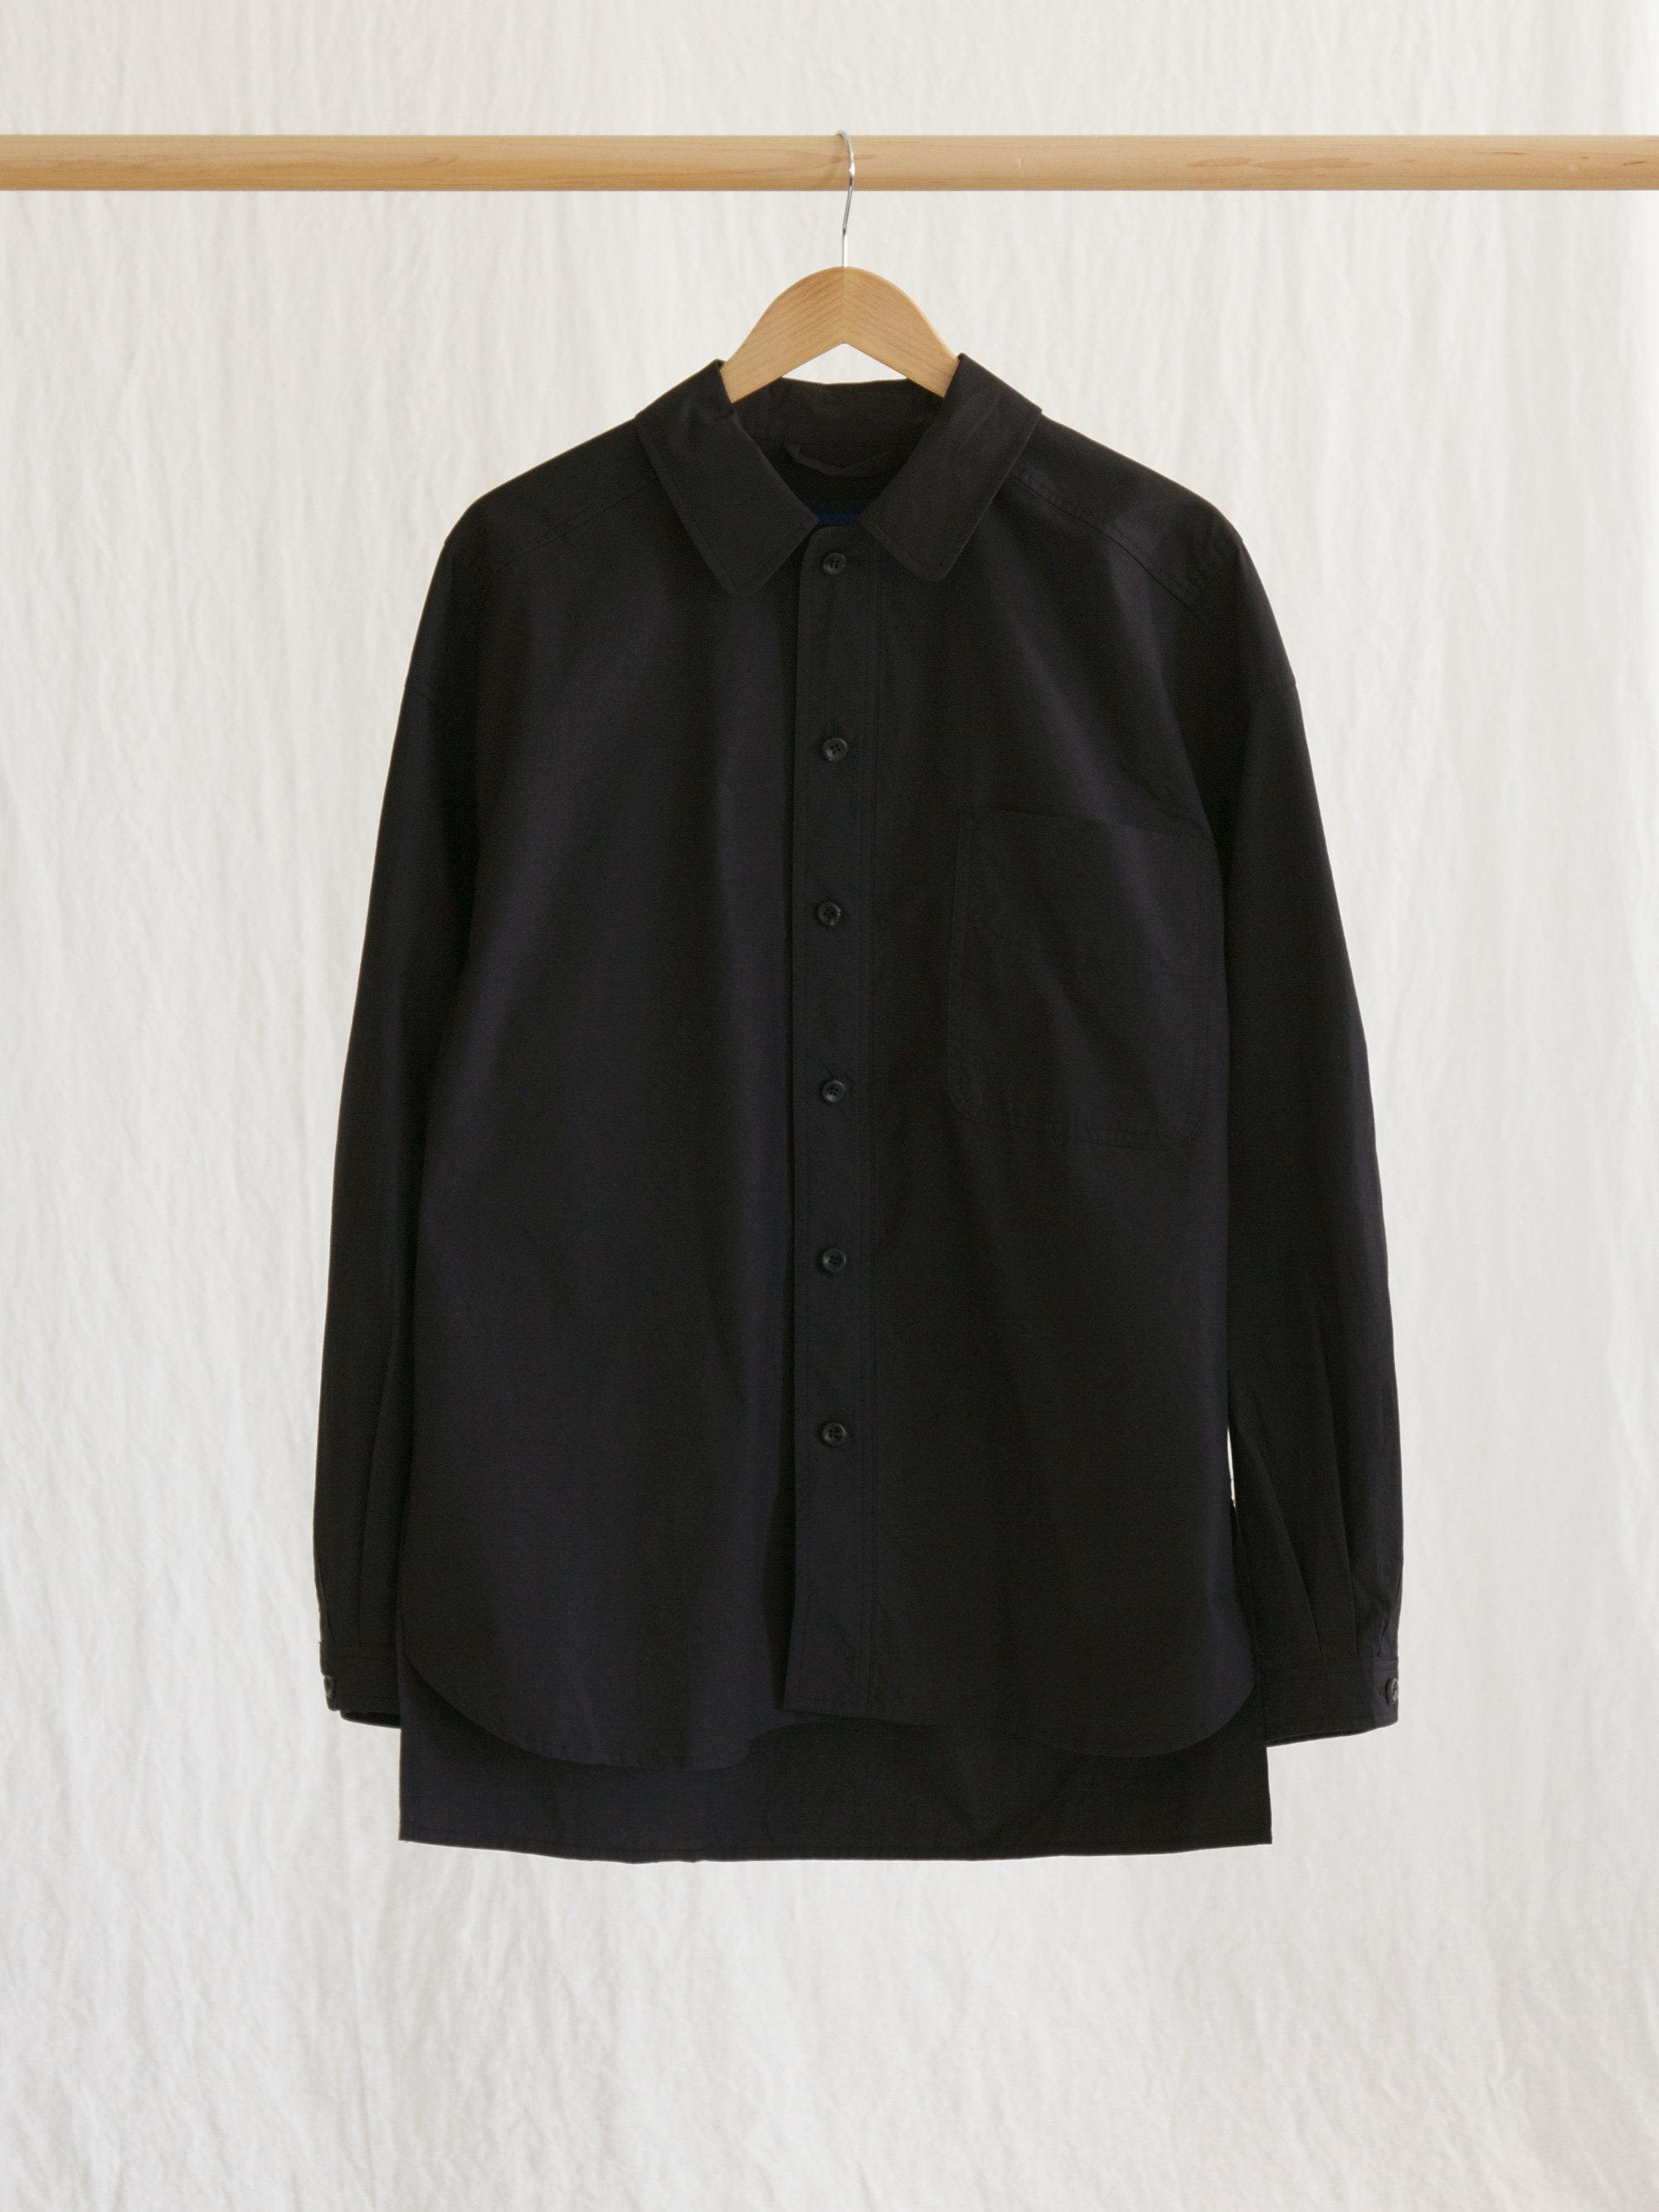 Namu Shop - Document The Document Set Up Shirt - Dark Navy/Black